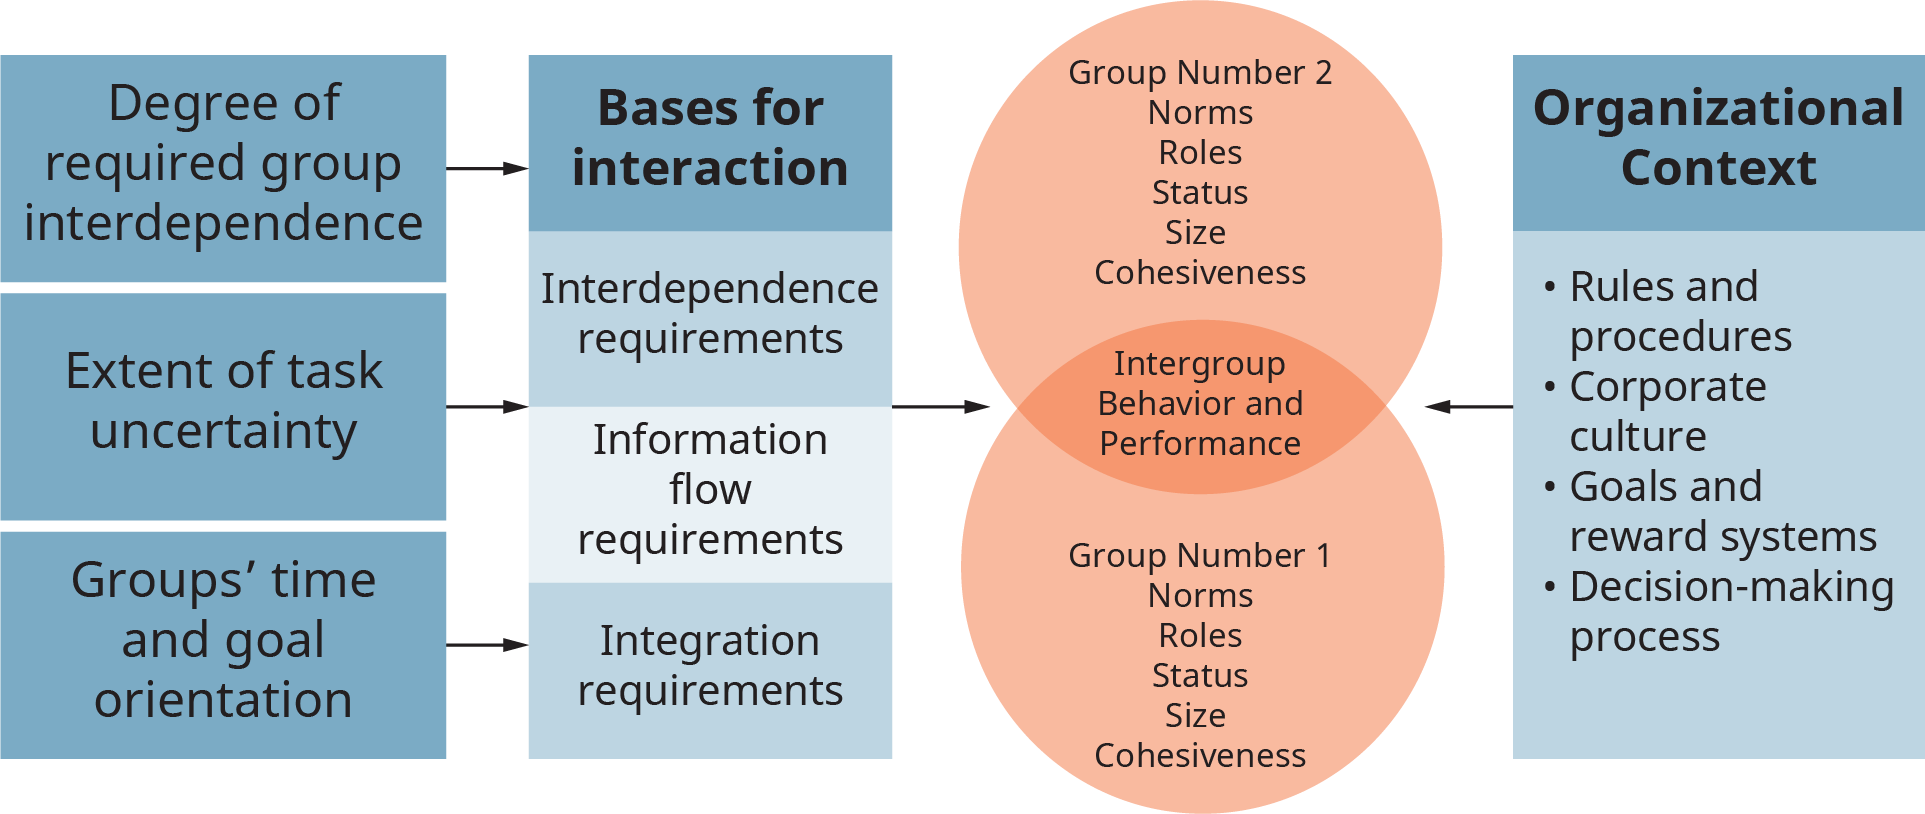 A diagram illustrates the model of intergroup behavior and performance.